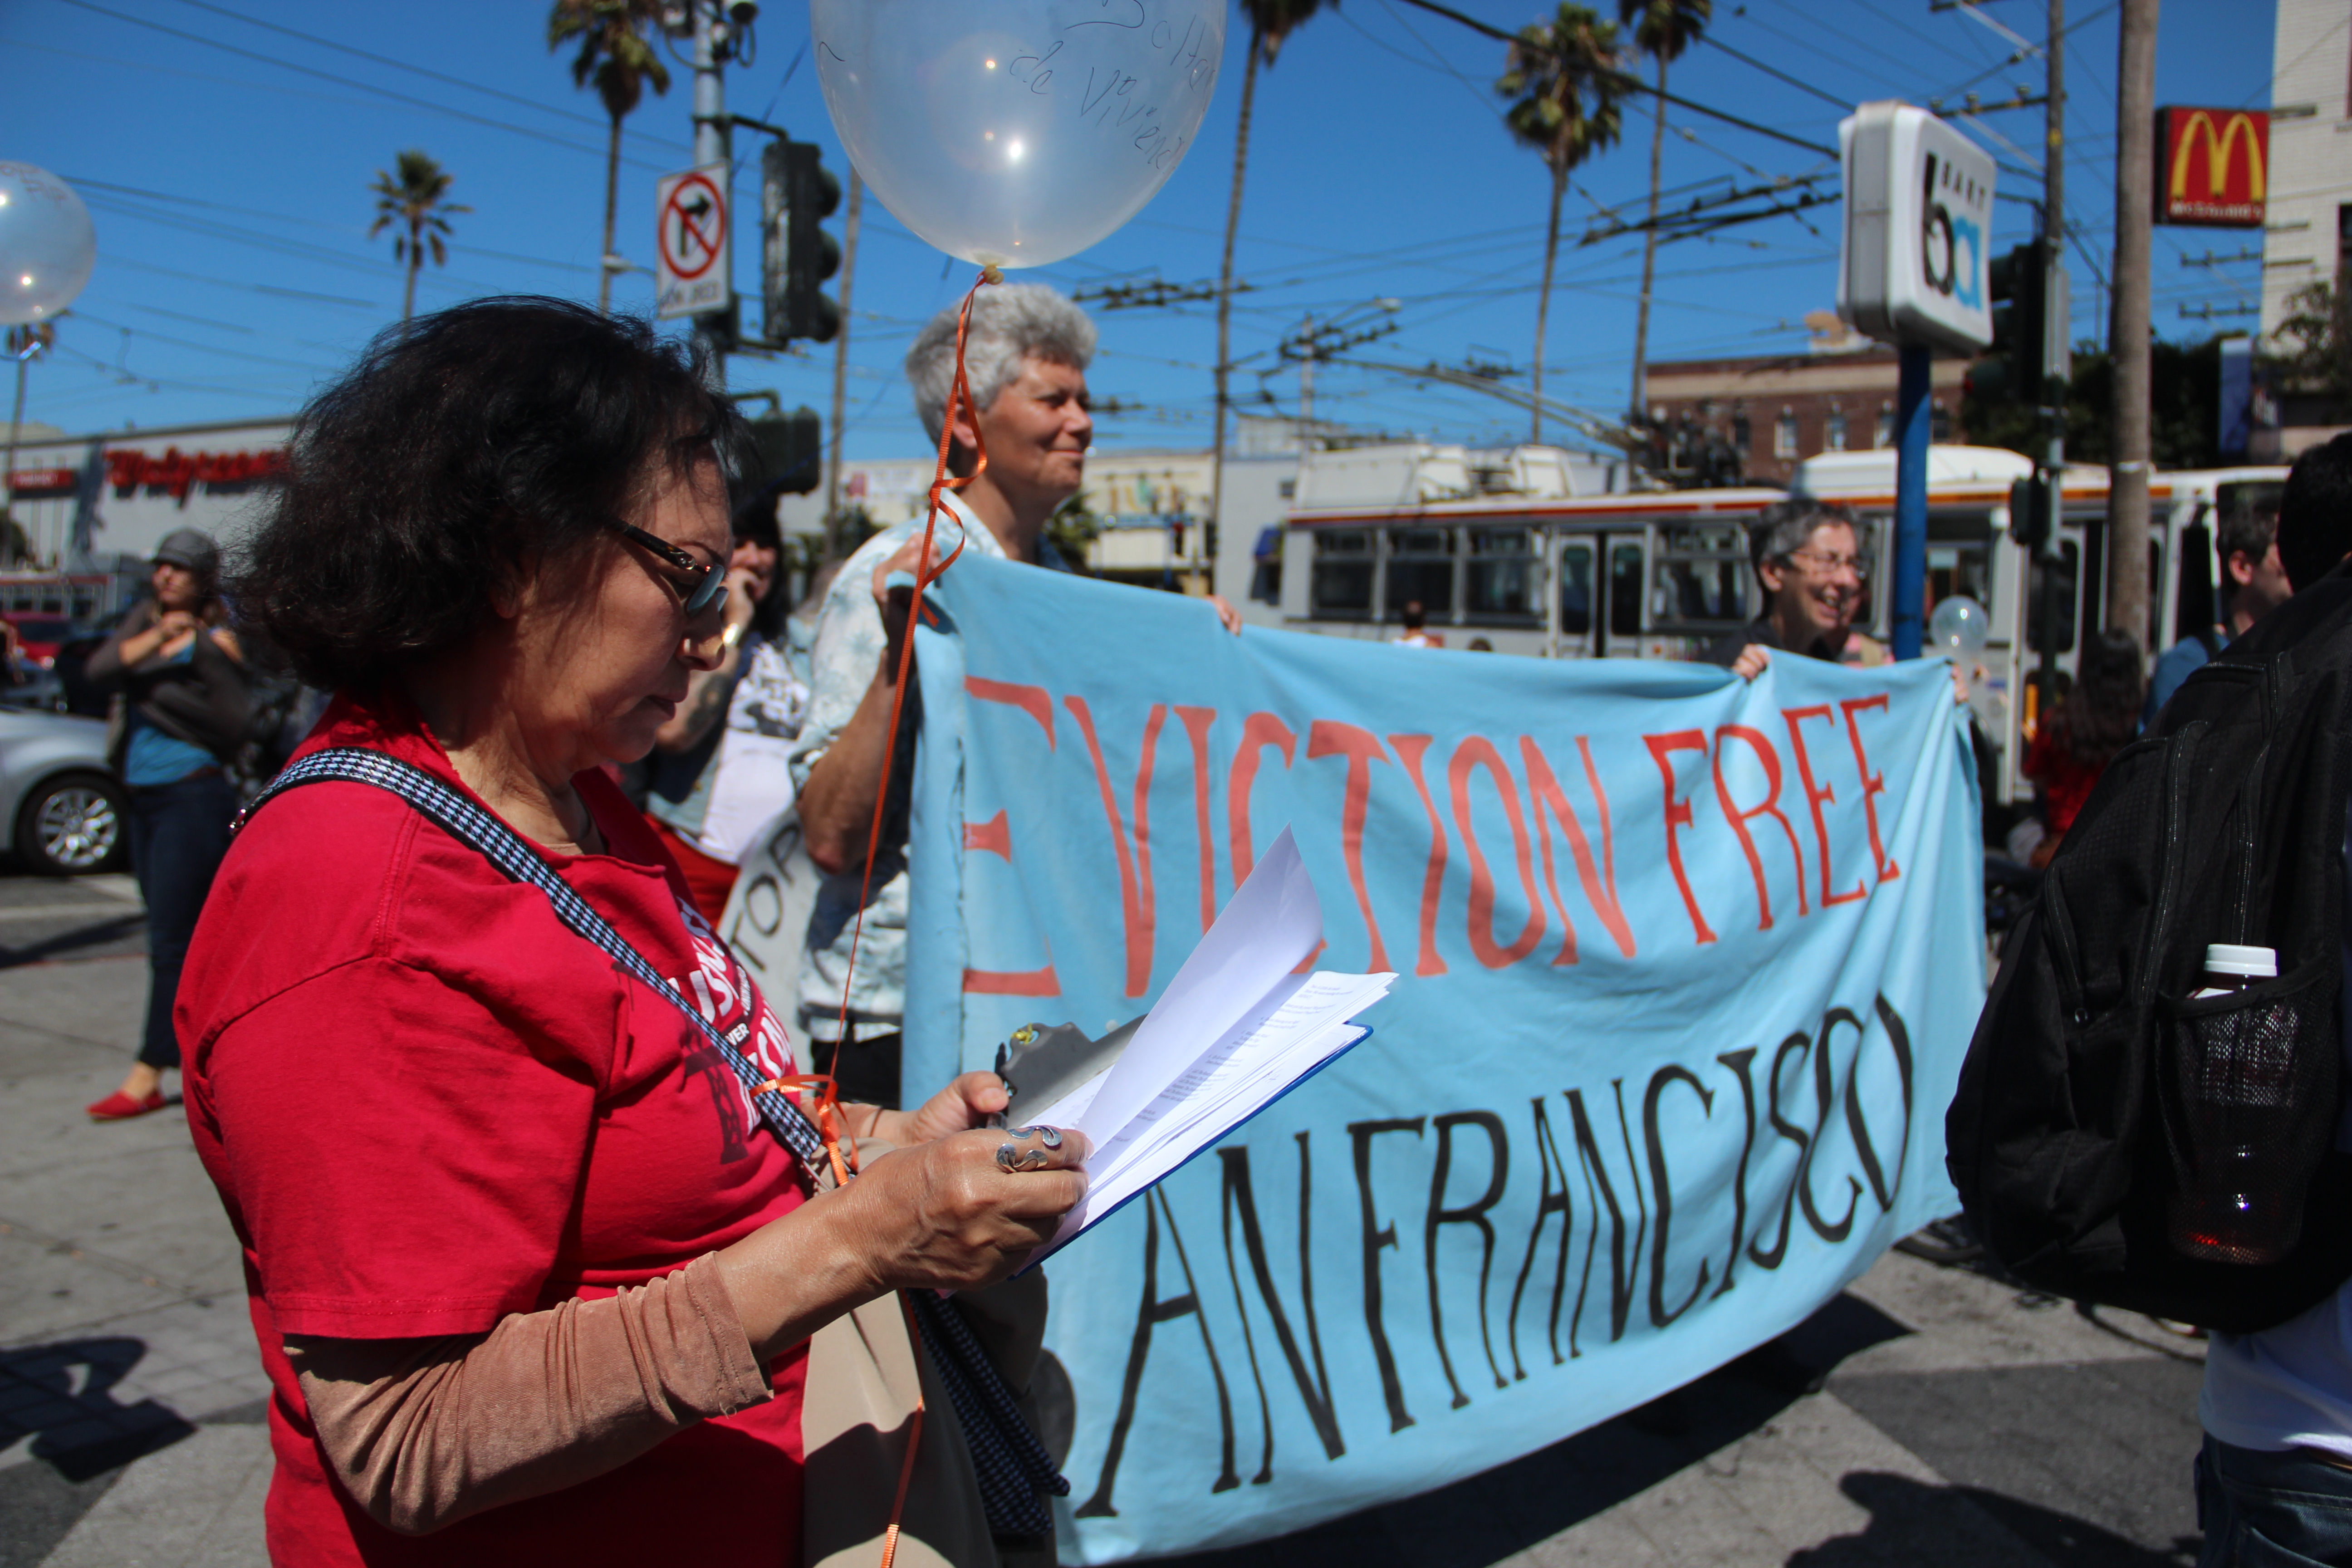 Controversial displacement study leads to strife between Planning Department, Mission anti-gentrification activists